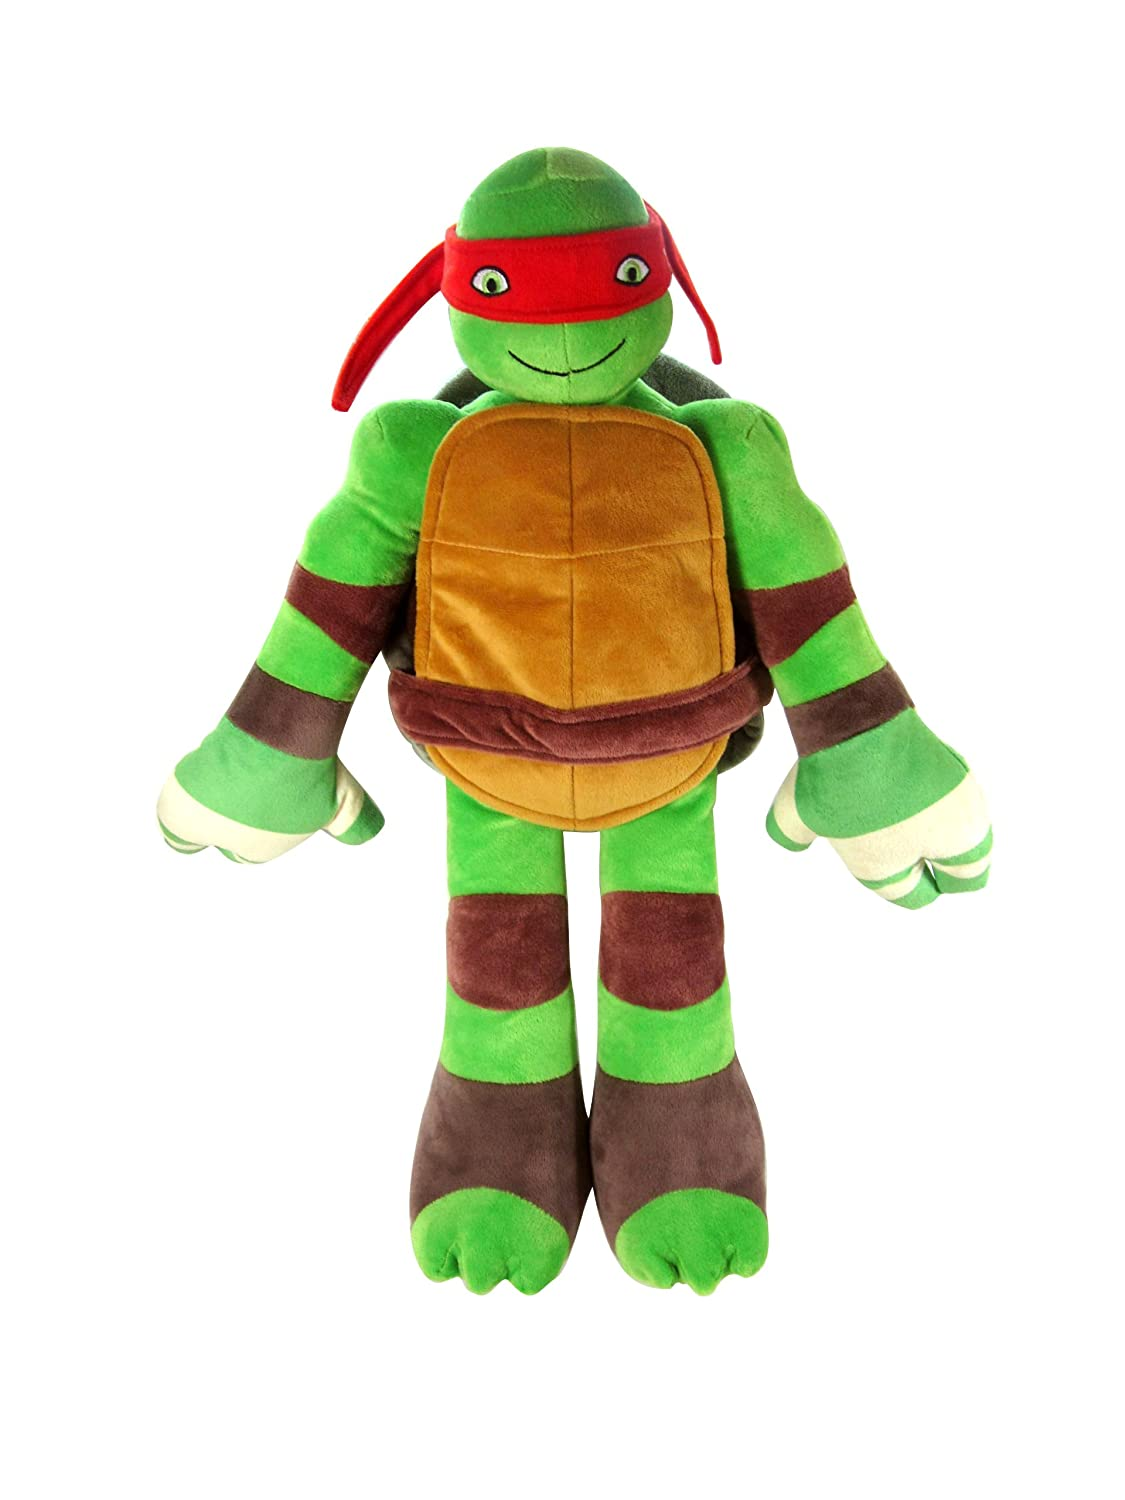 Teenage Mutant Ninja Turtles Pillowtime Pal Pillow, Raphael